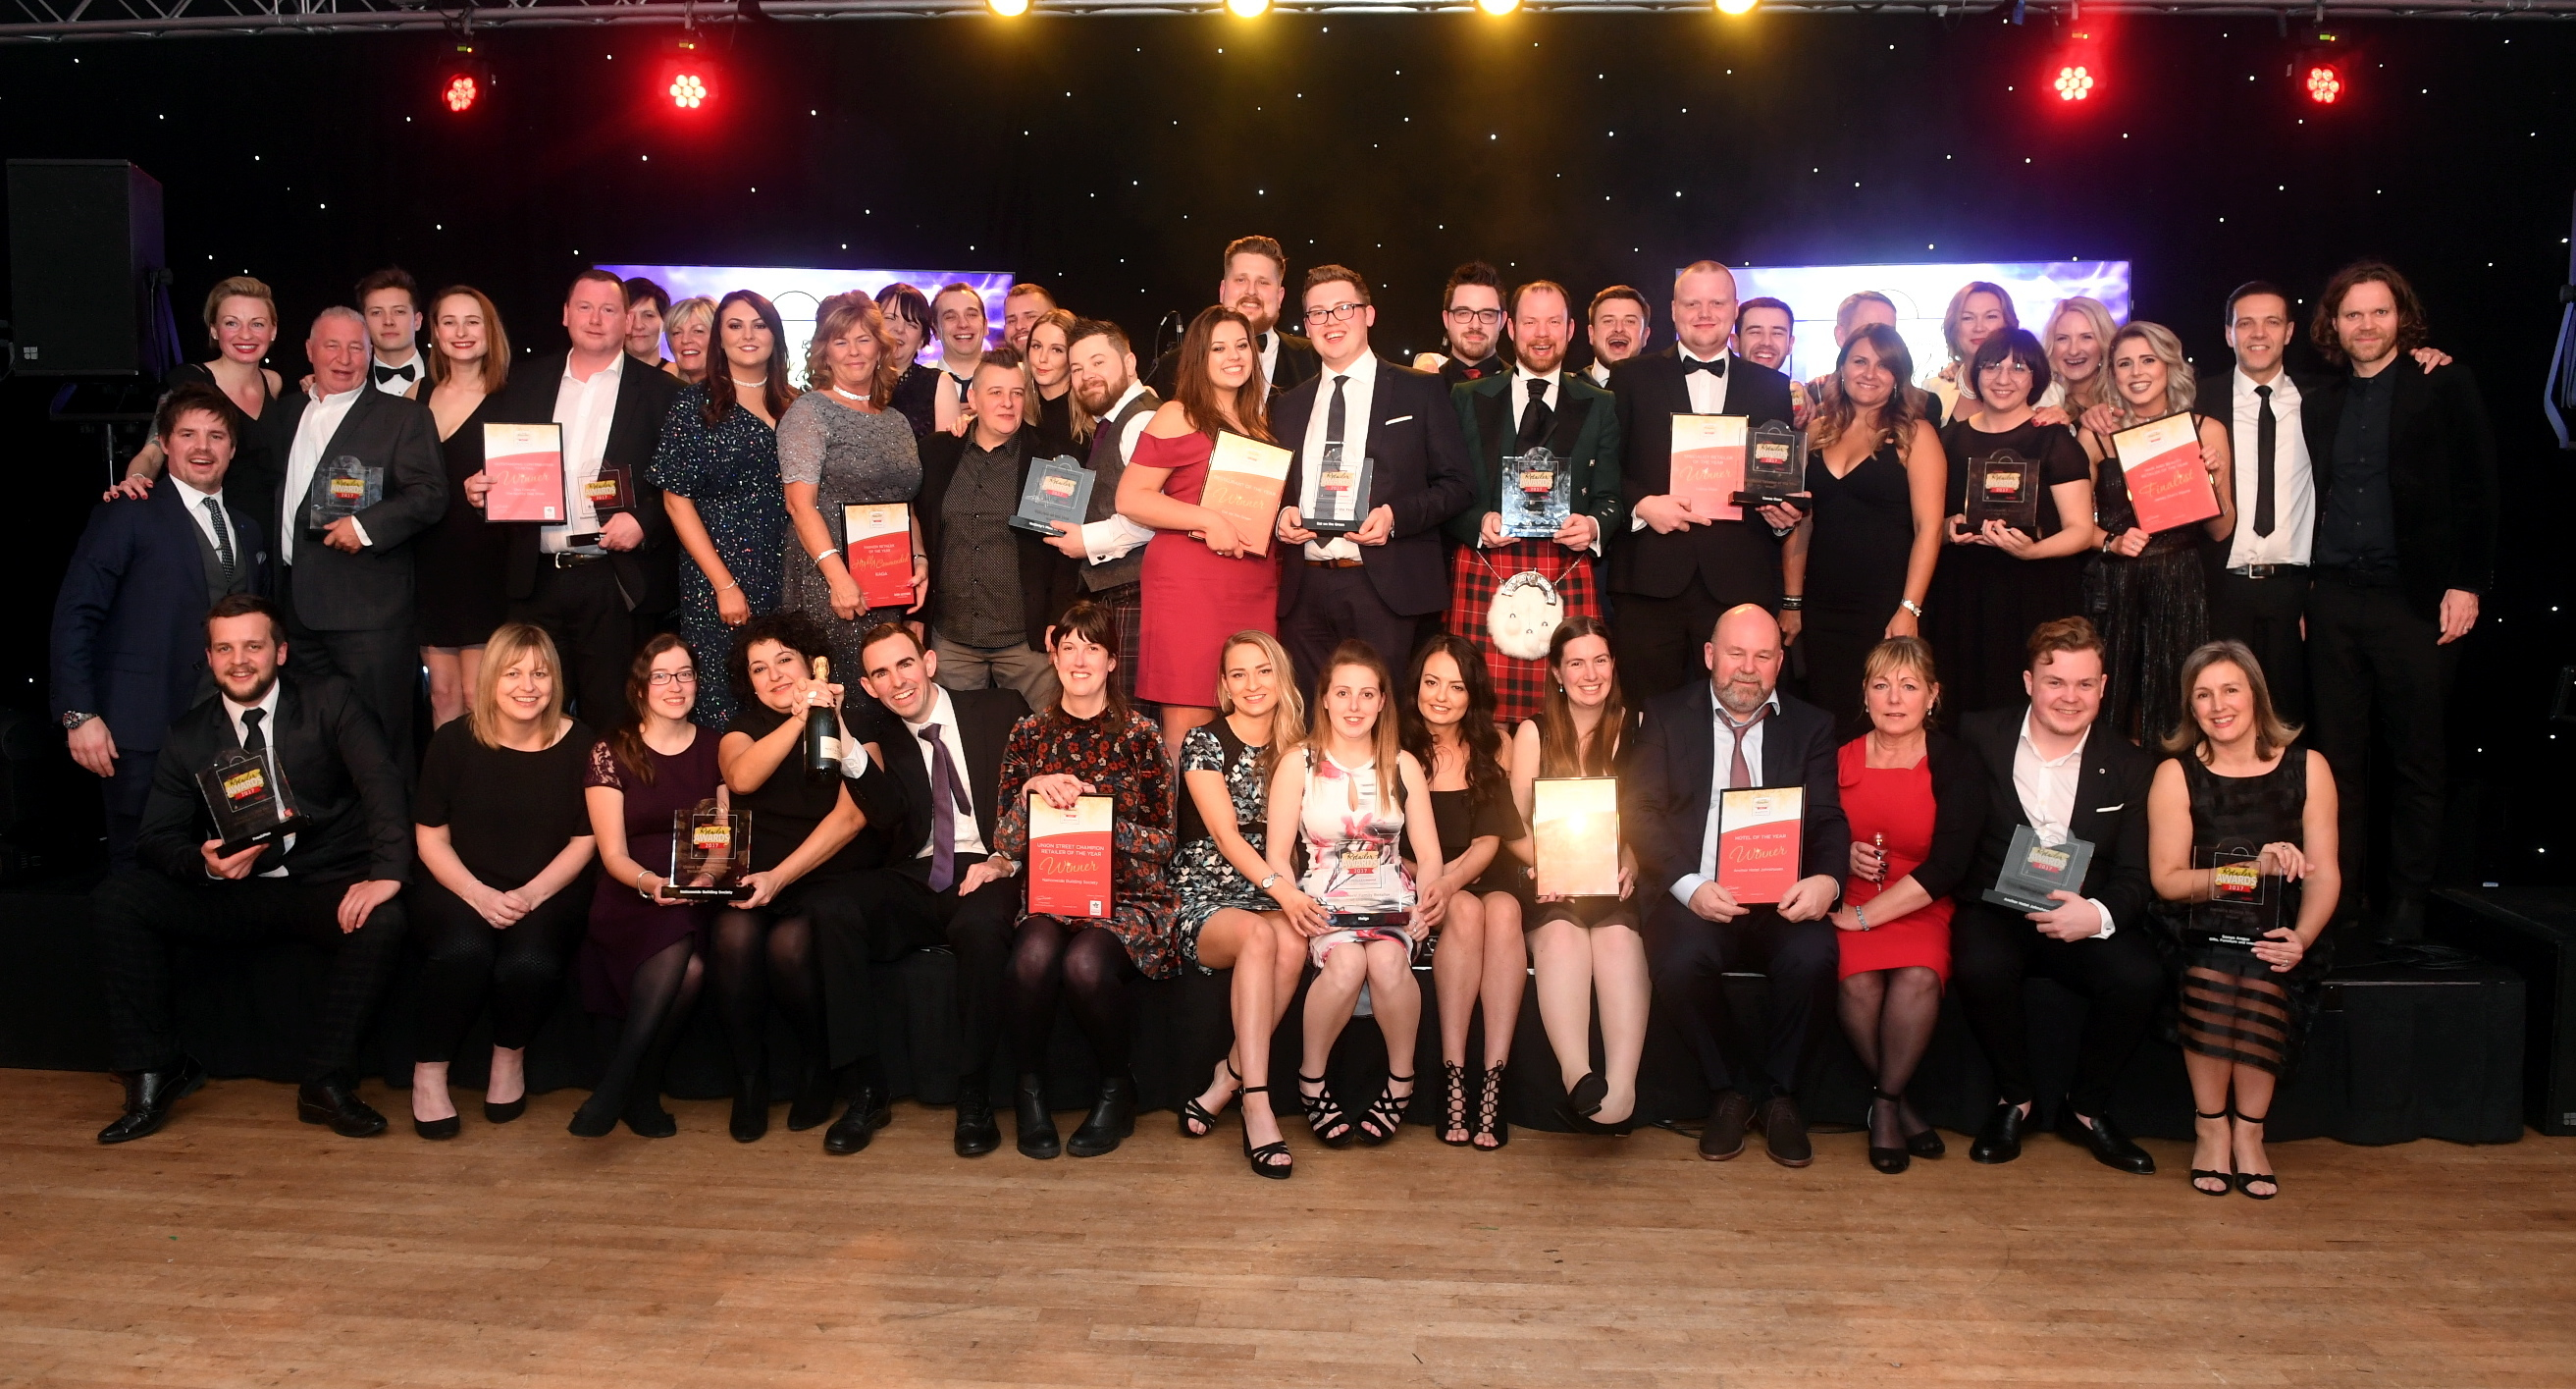 Last year's Evening Express Retailer Award winners